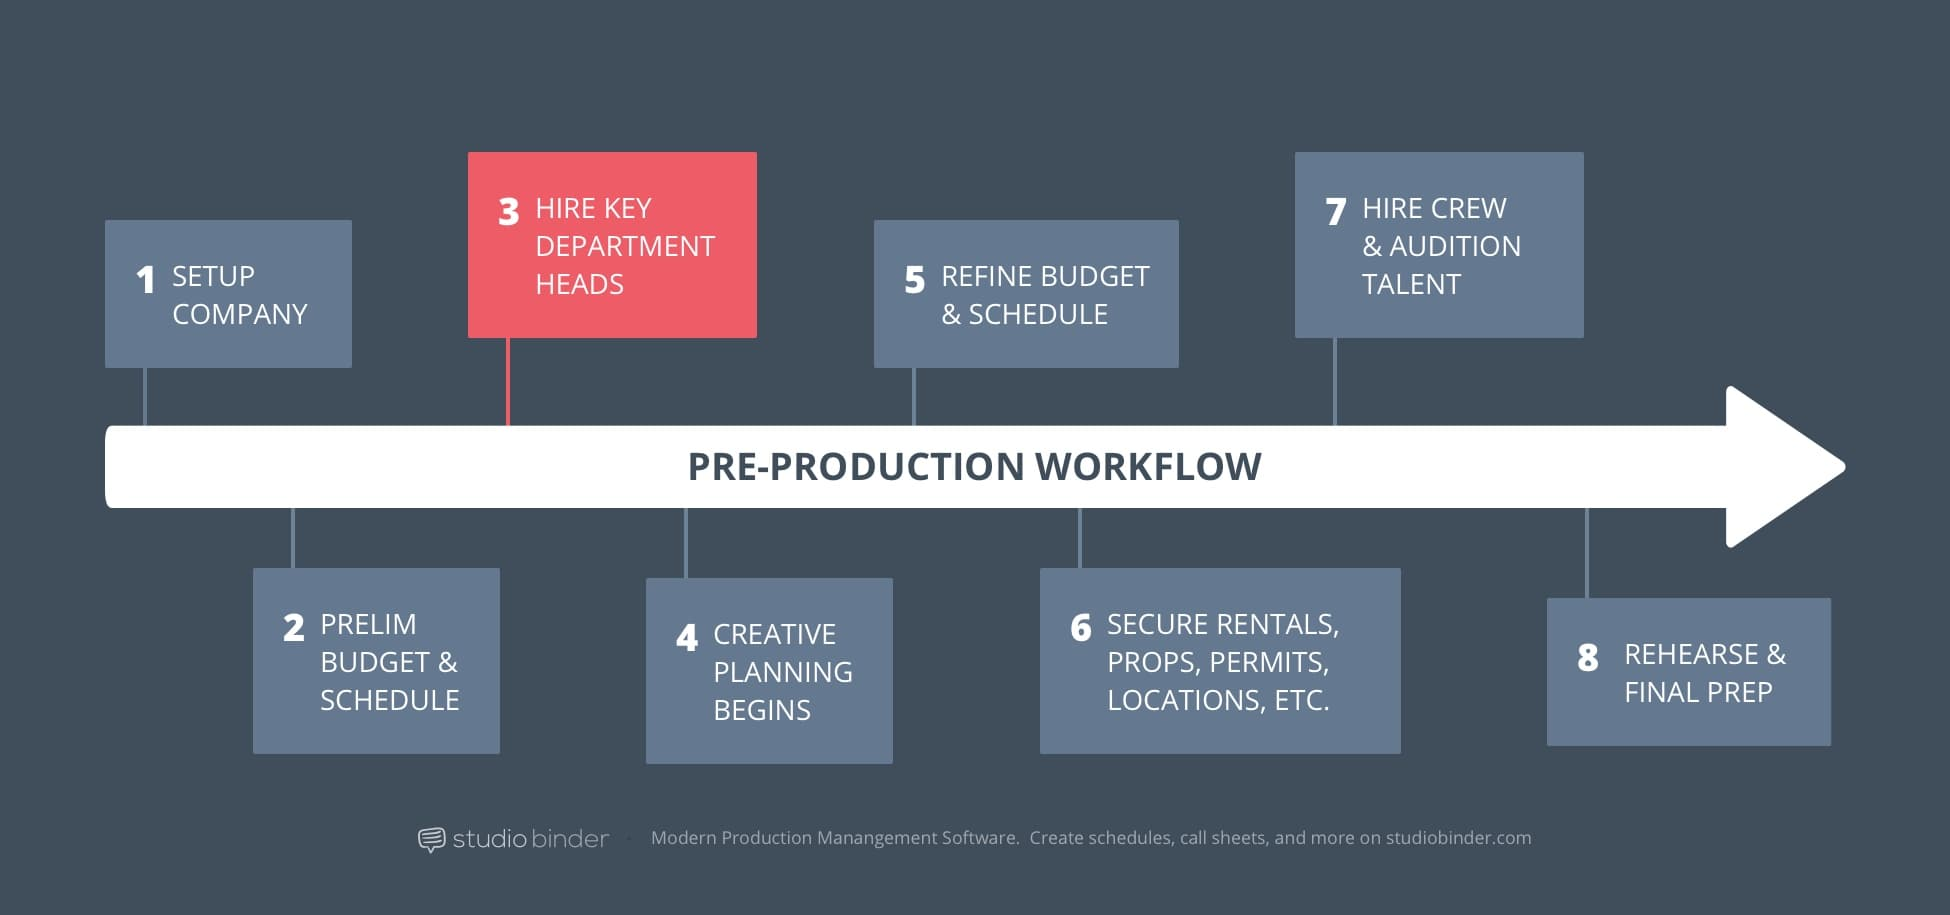 3 – StudioBinder Pre-Production Workflow – Hire Department Keys